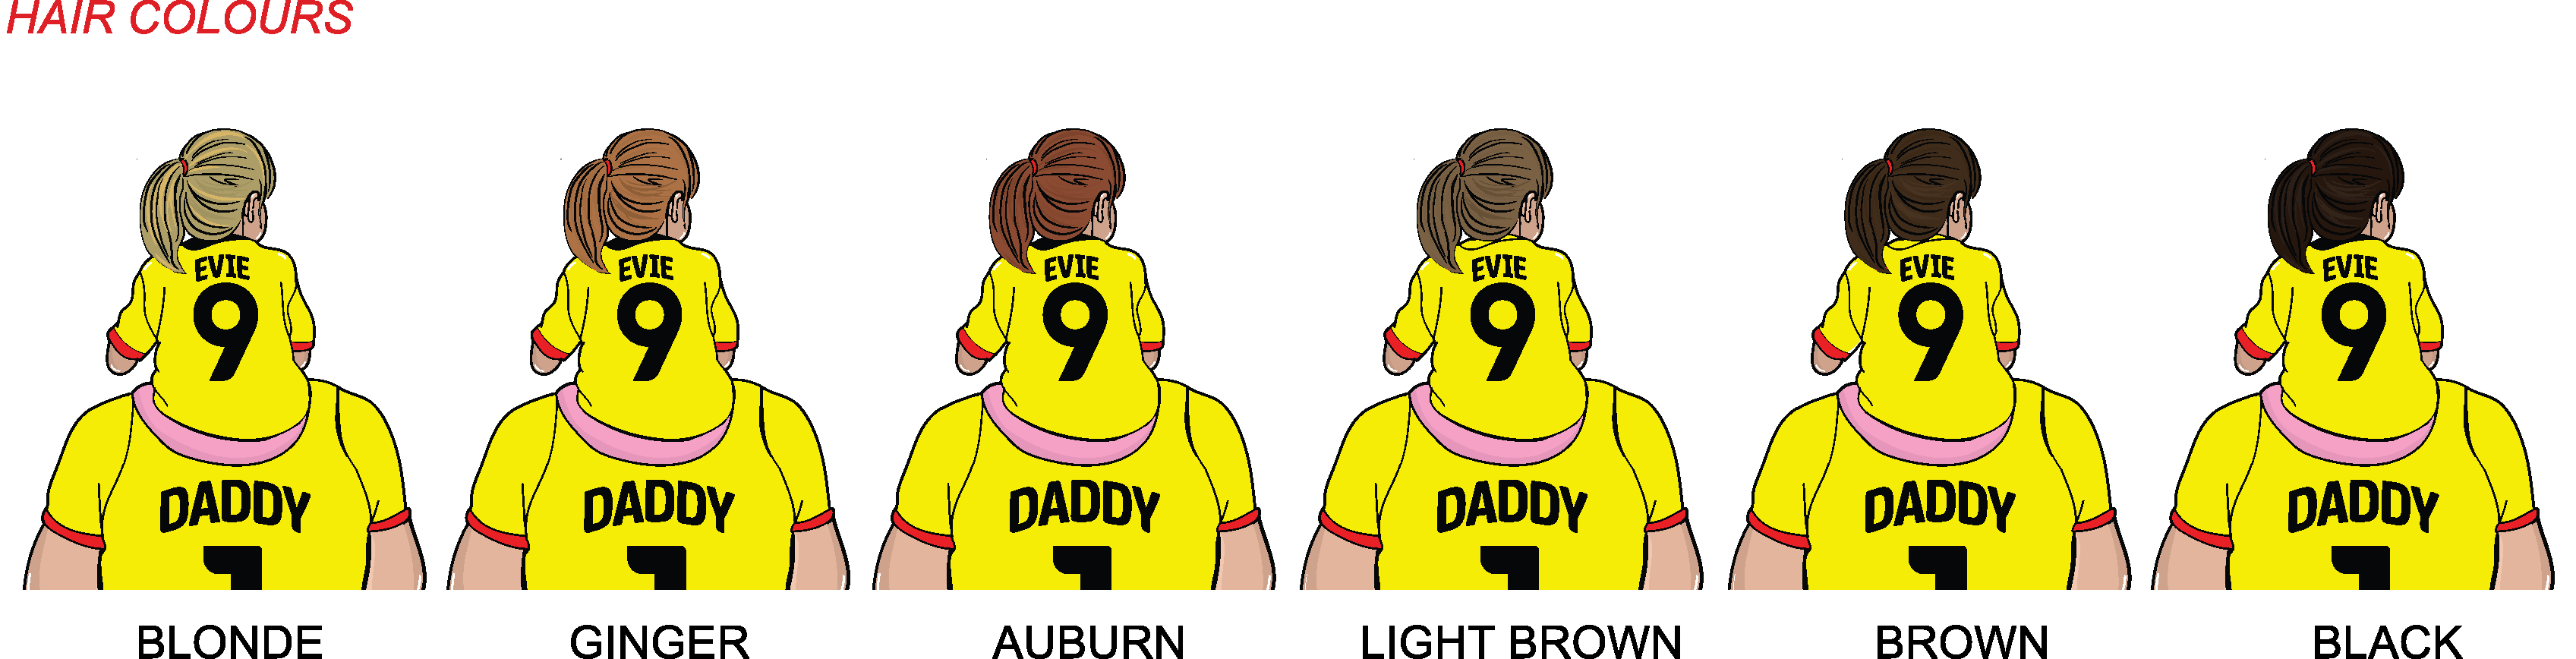 WATFORD Dad and lass